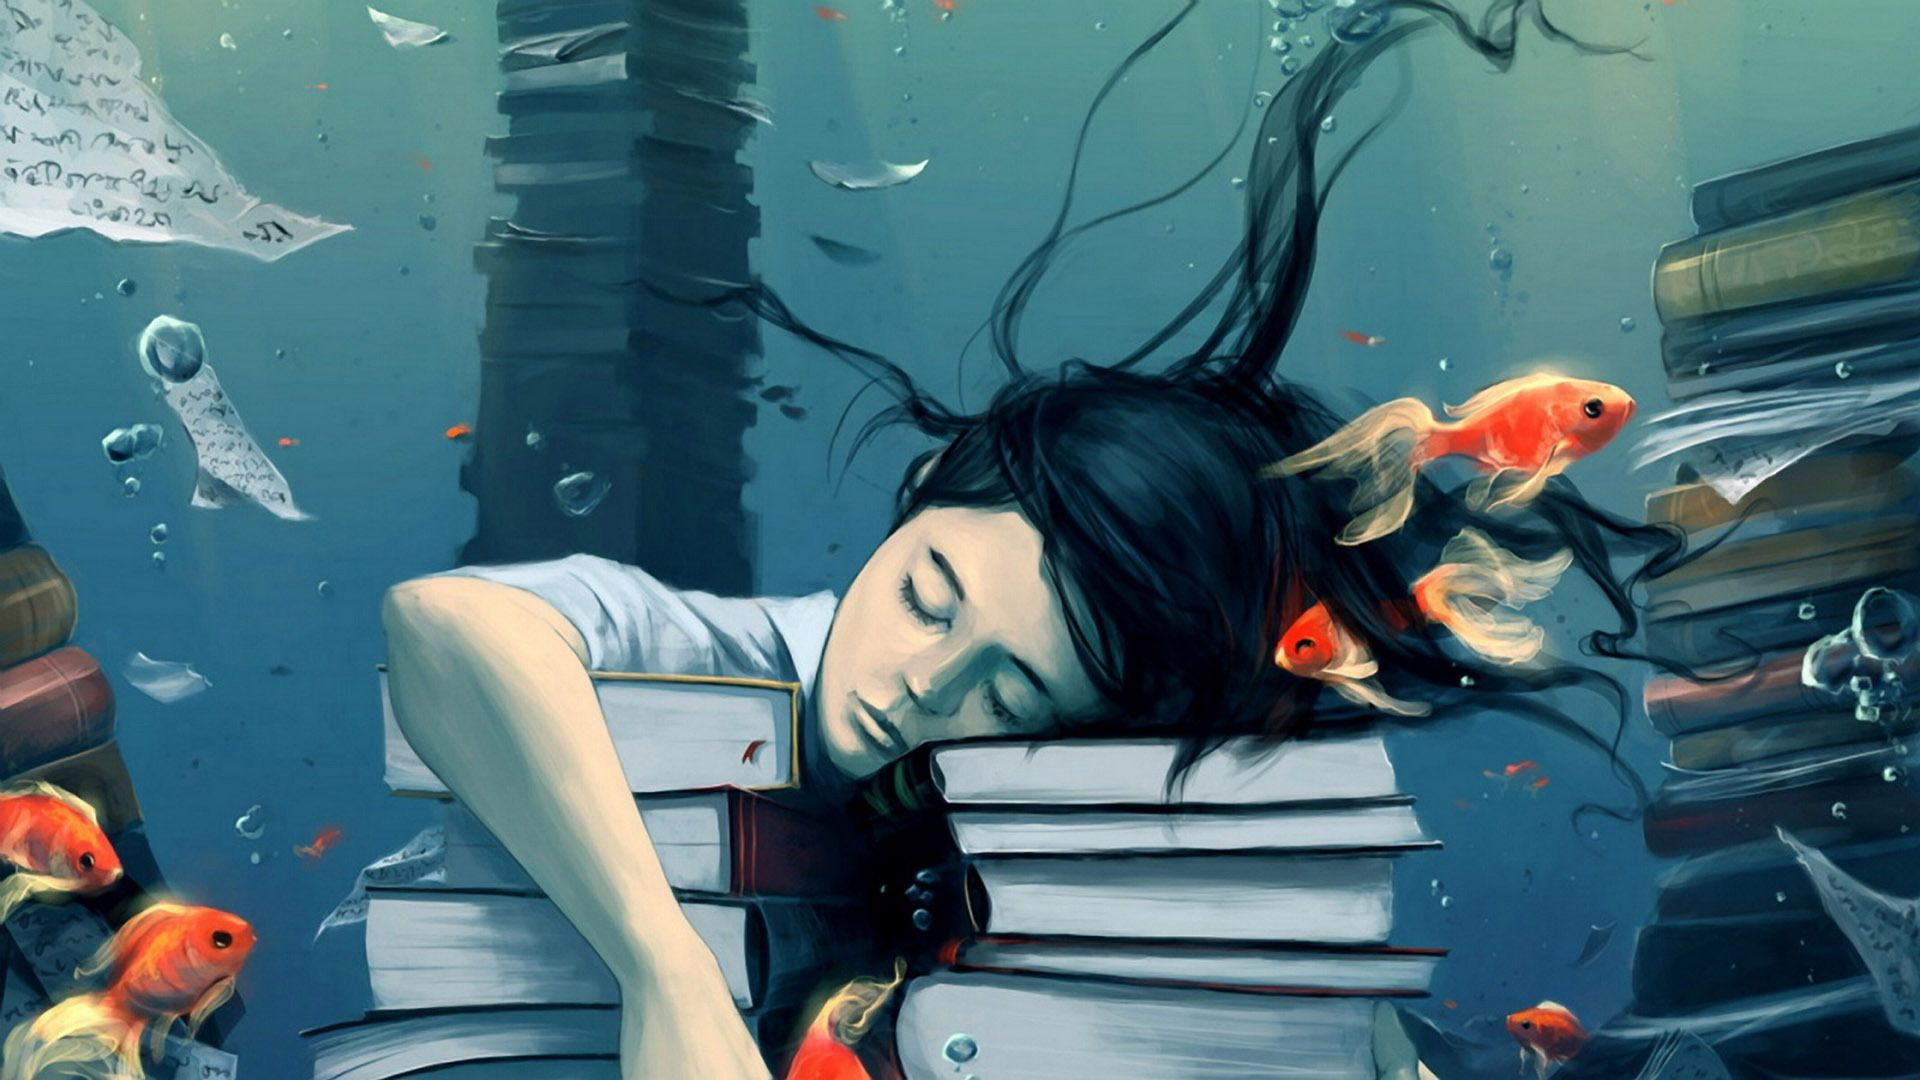 sleeping-on-books-wallpaper-1.jpg